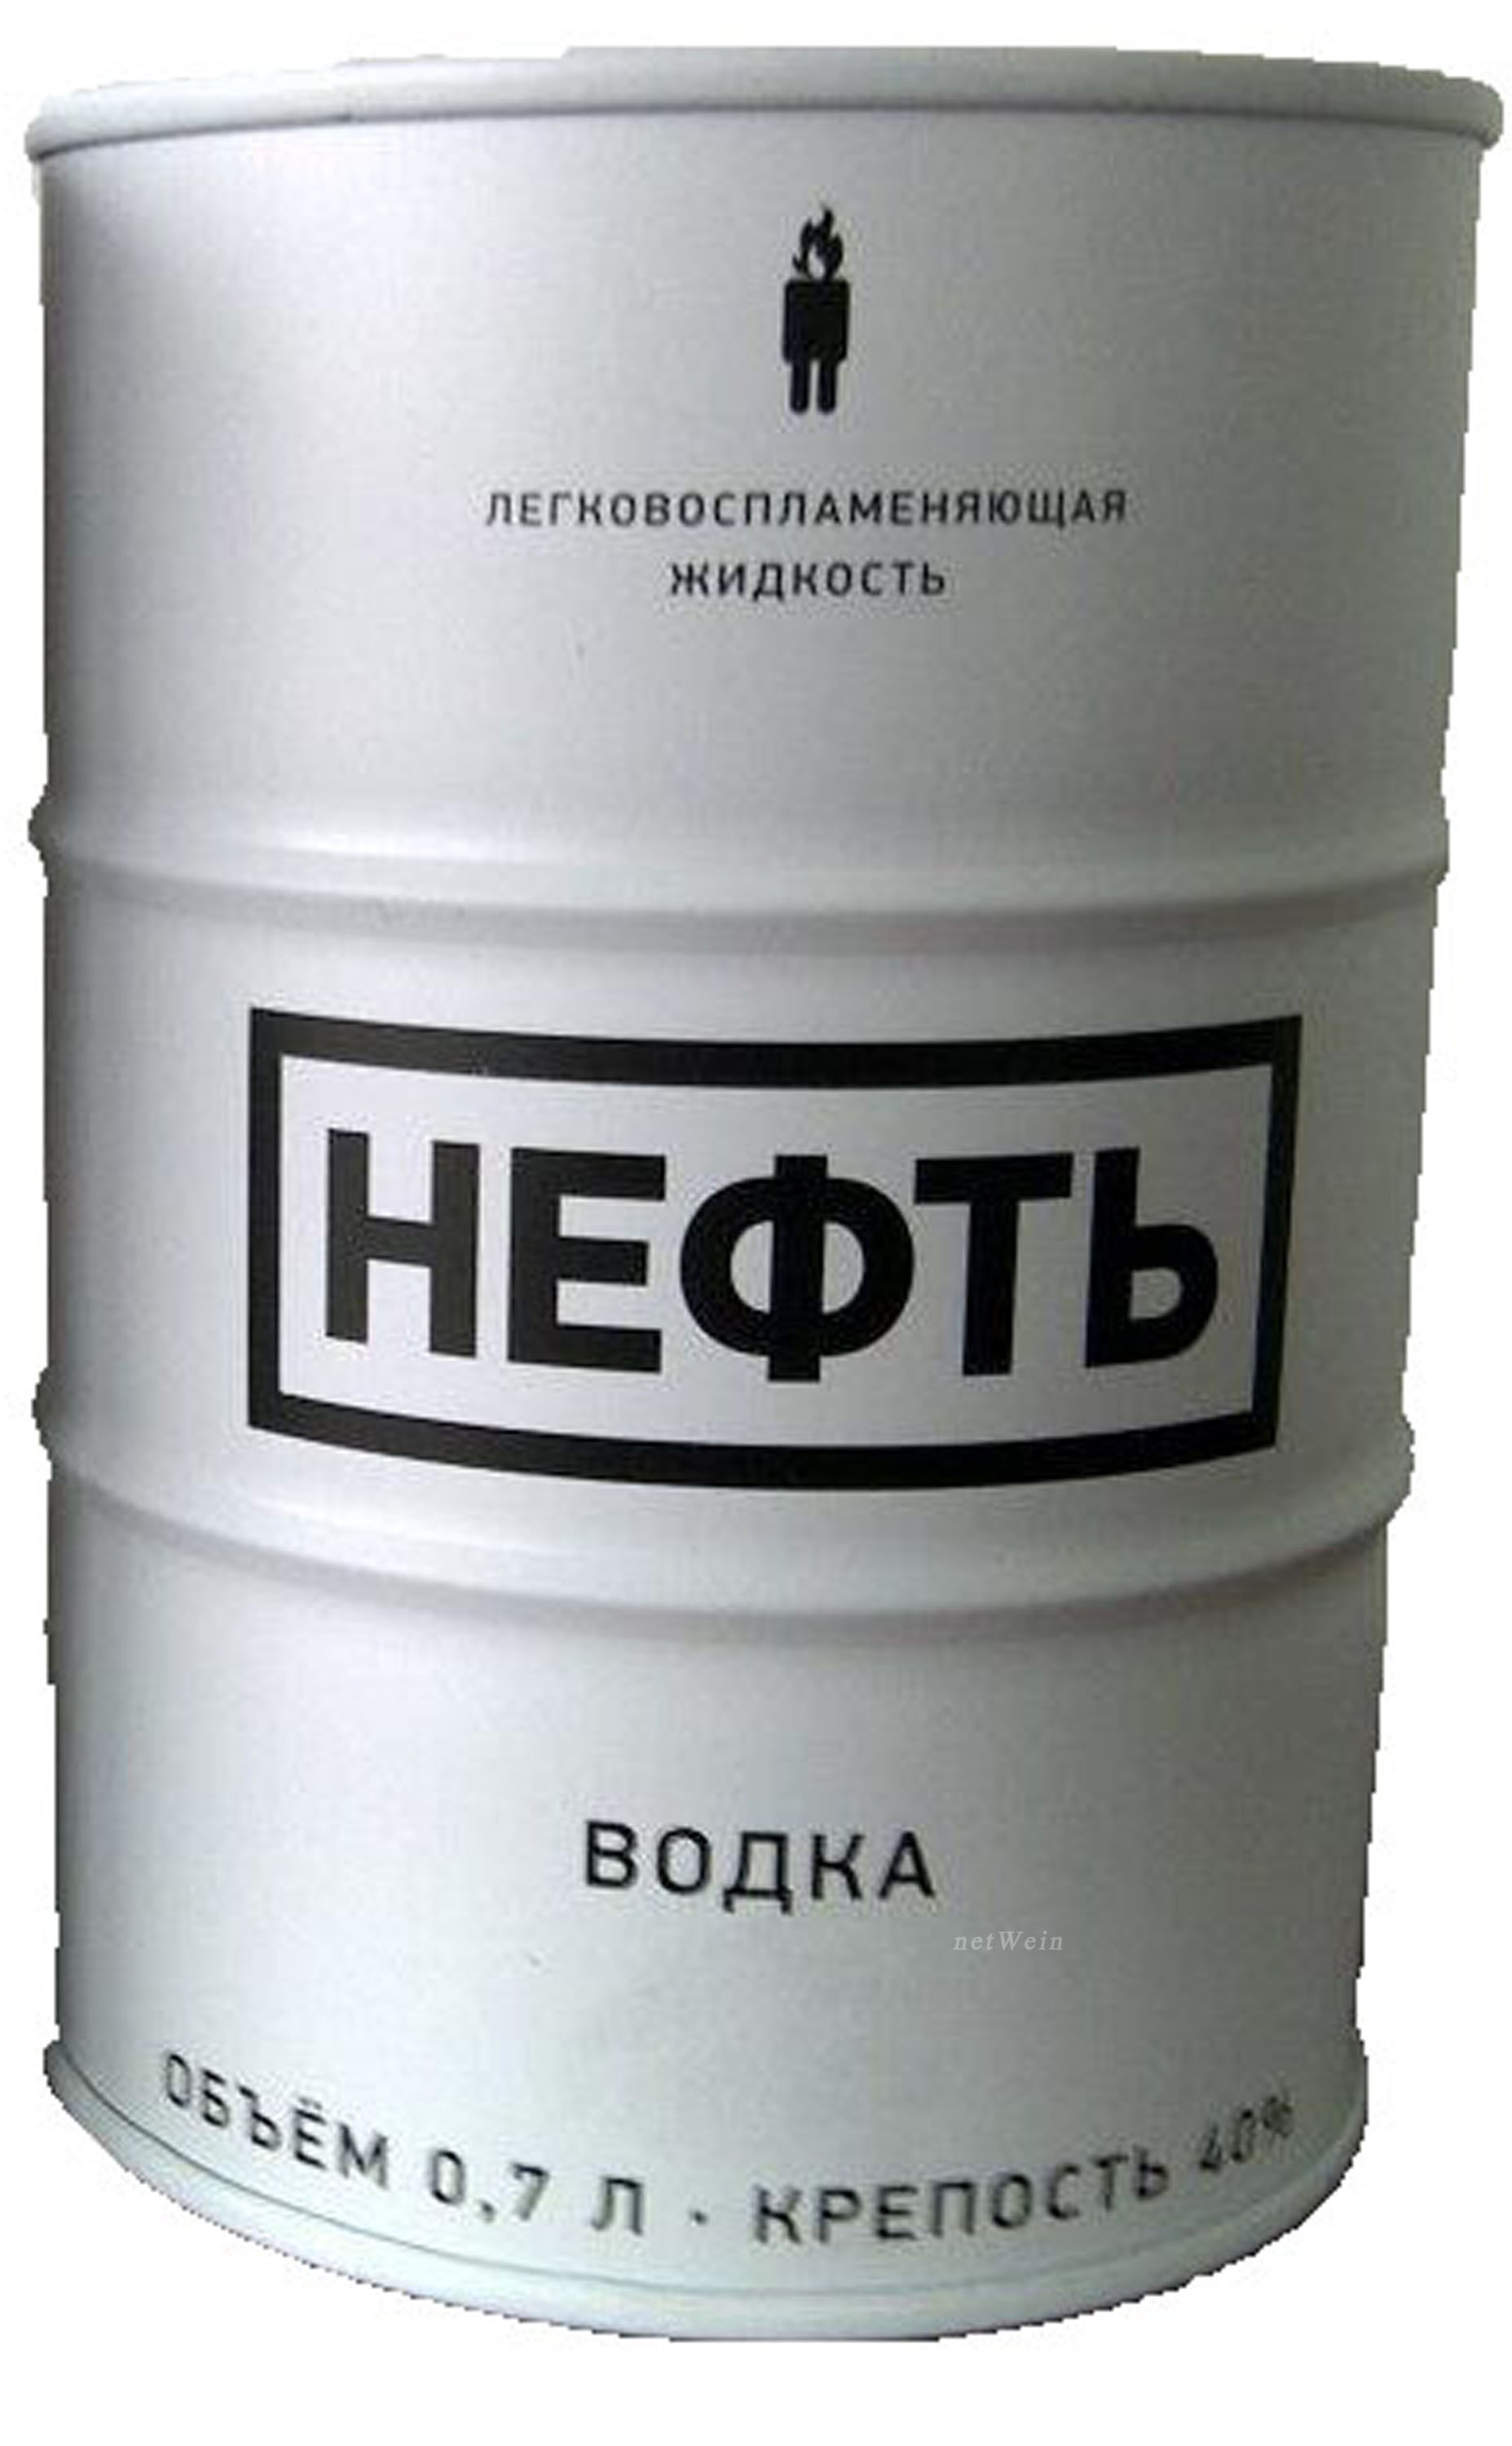 Neft - White Barrel Vodka